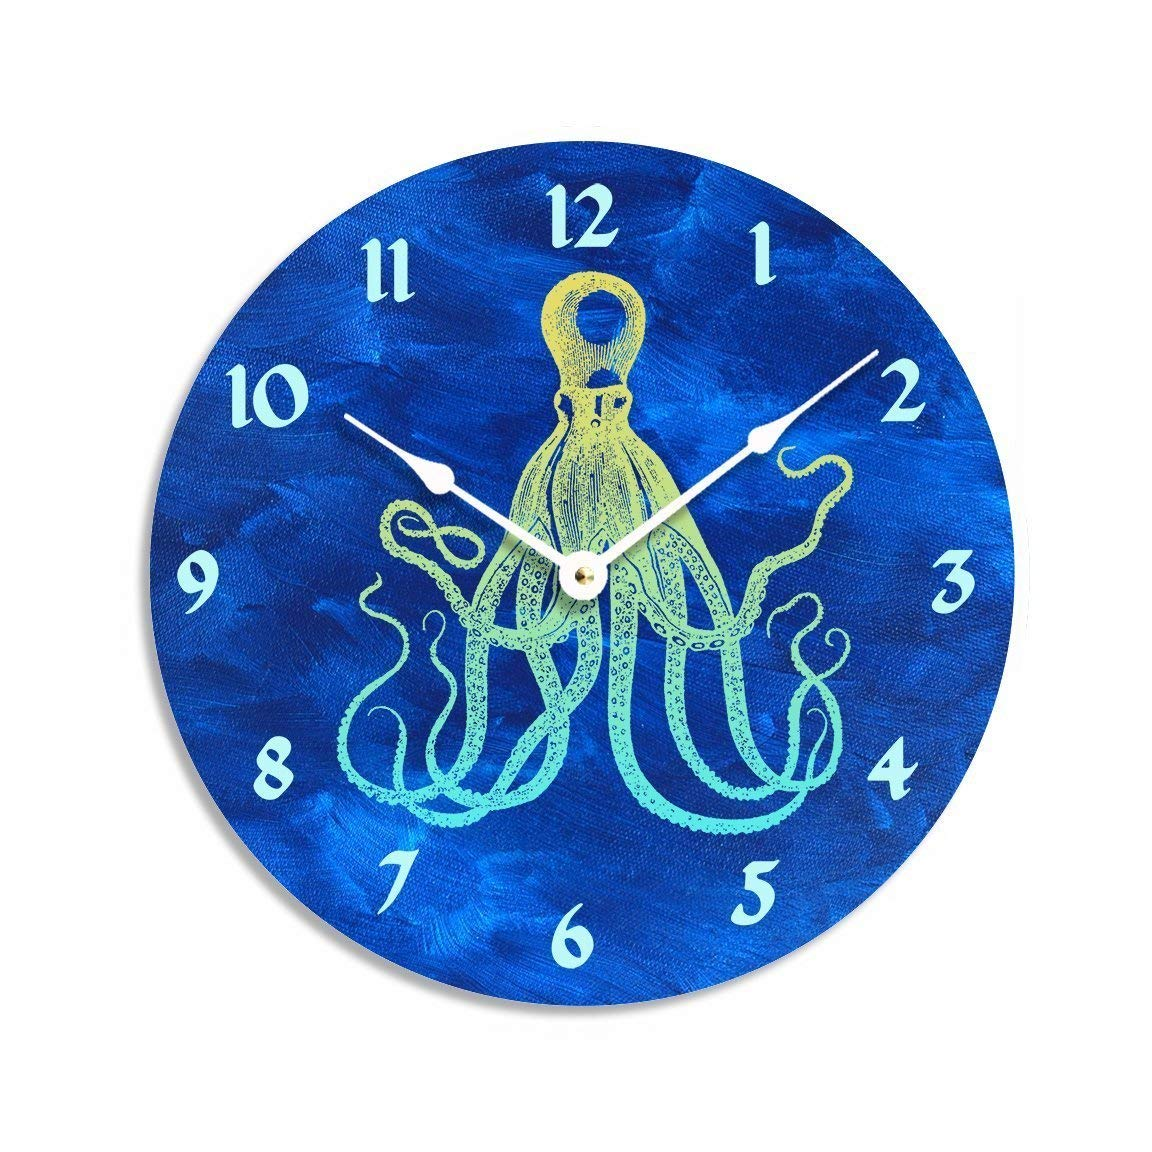 Vintage octopus design on dark blue acrylic painted background 10 inch wall clock. Dark blue, yellow and green colors.